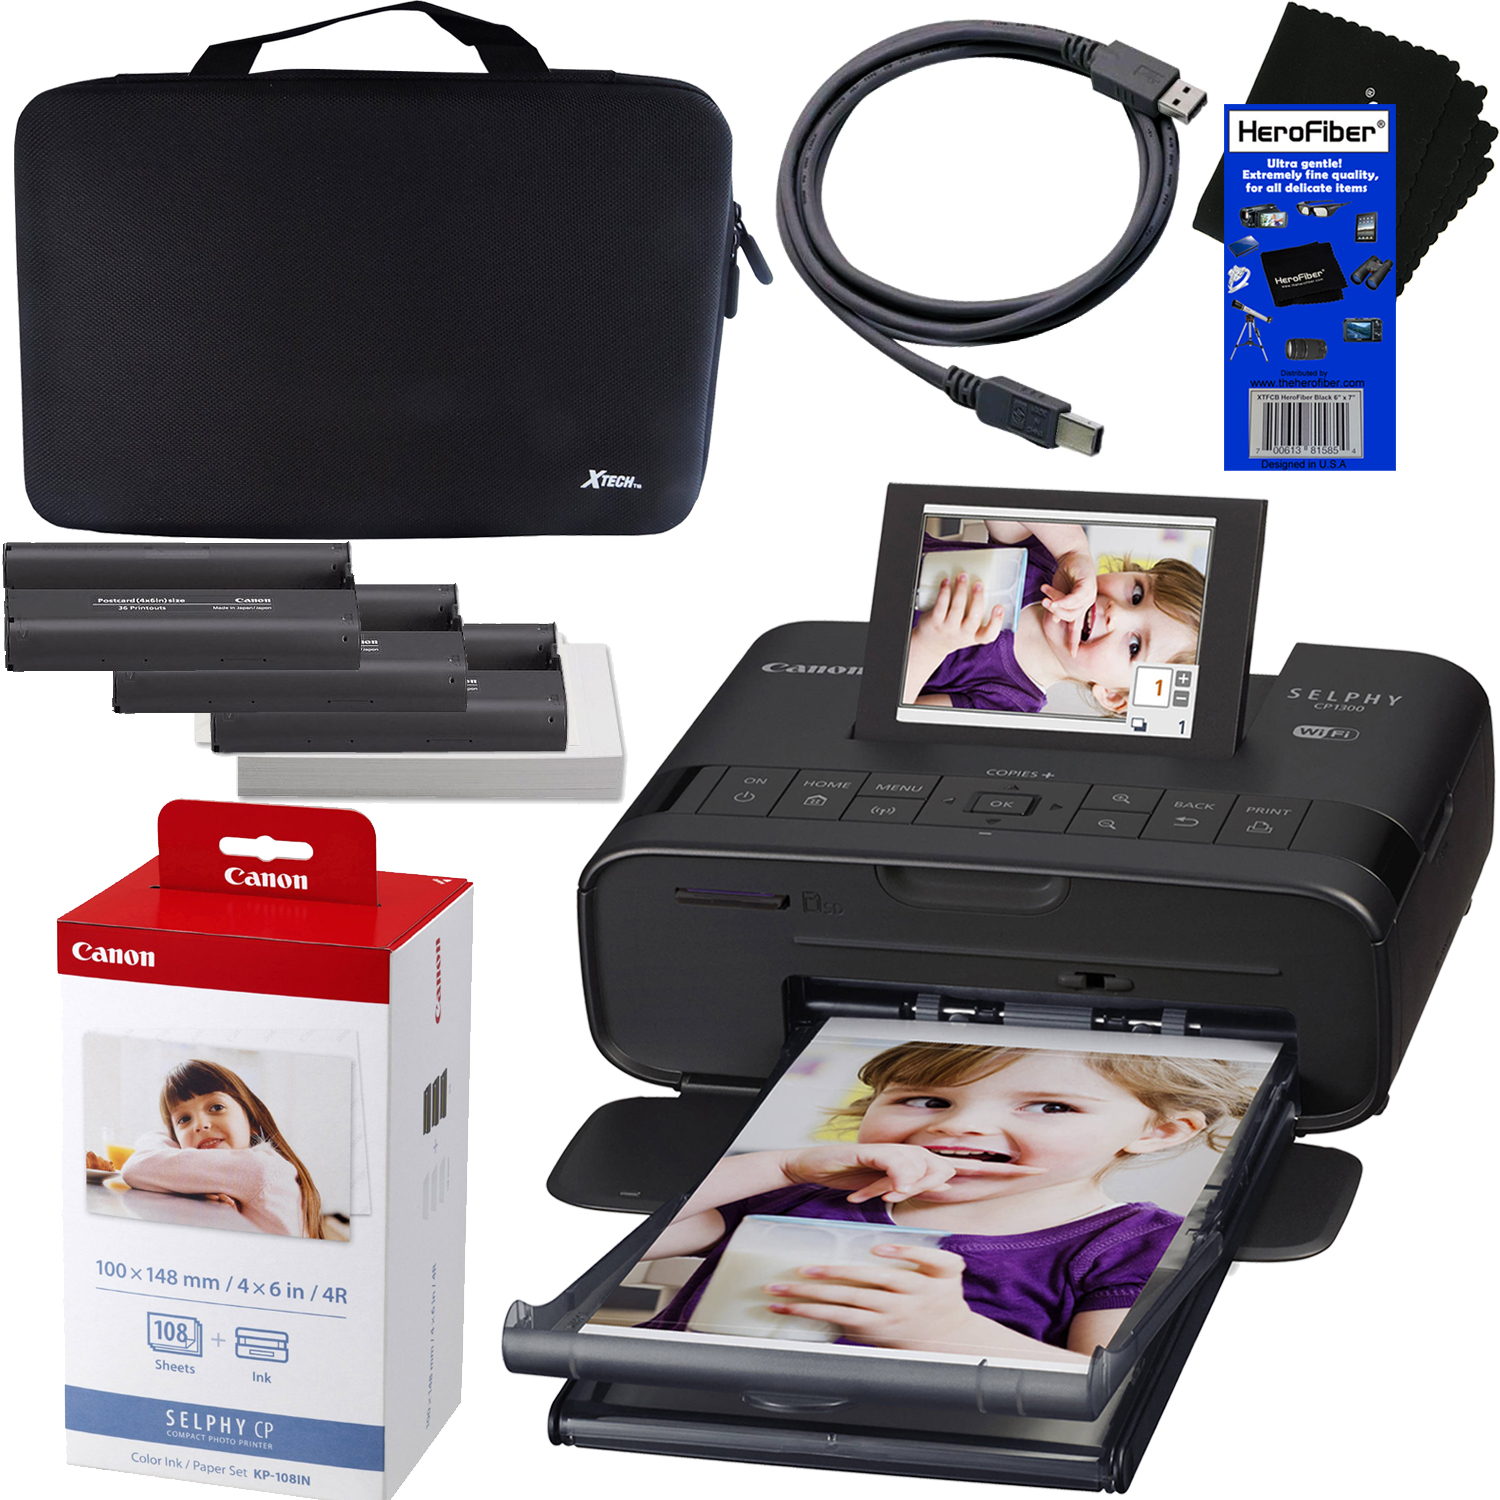 "Canon SELPHY CP1300 Wireless Compact Photo Printer (Black) + Canon KP-108IN Color Ink Paper Set (Produces up to 108 of 4 x 6"" prints) + Xtech Custom Case + USB Printer Cable + HeroFiber Cleaning Cloth"